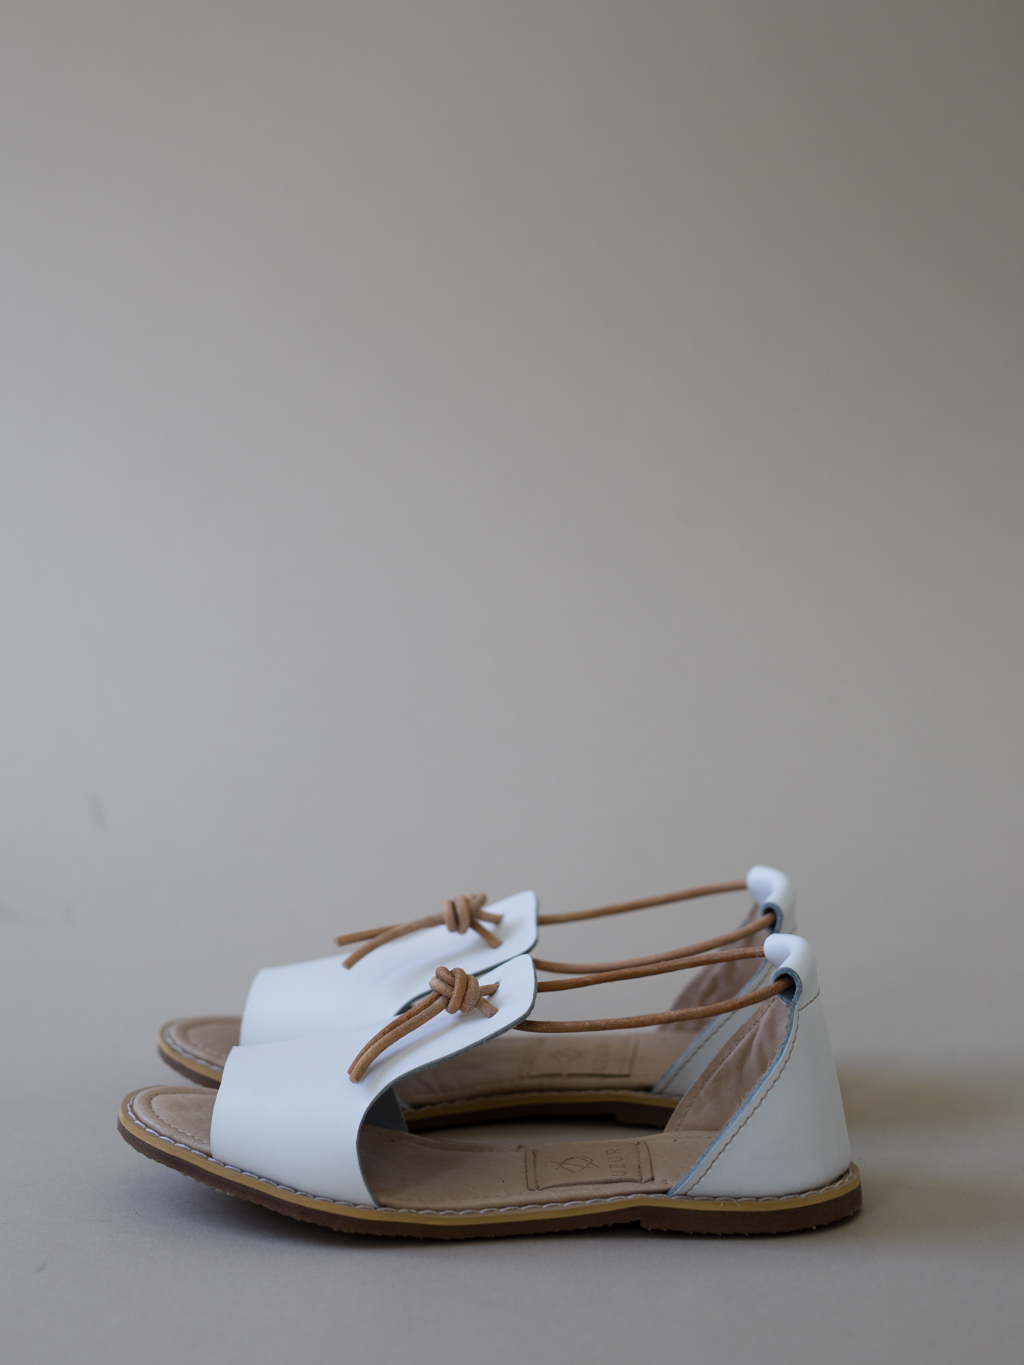 Fundo · Swahili translation : knot